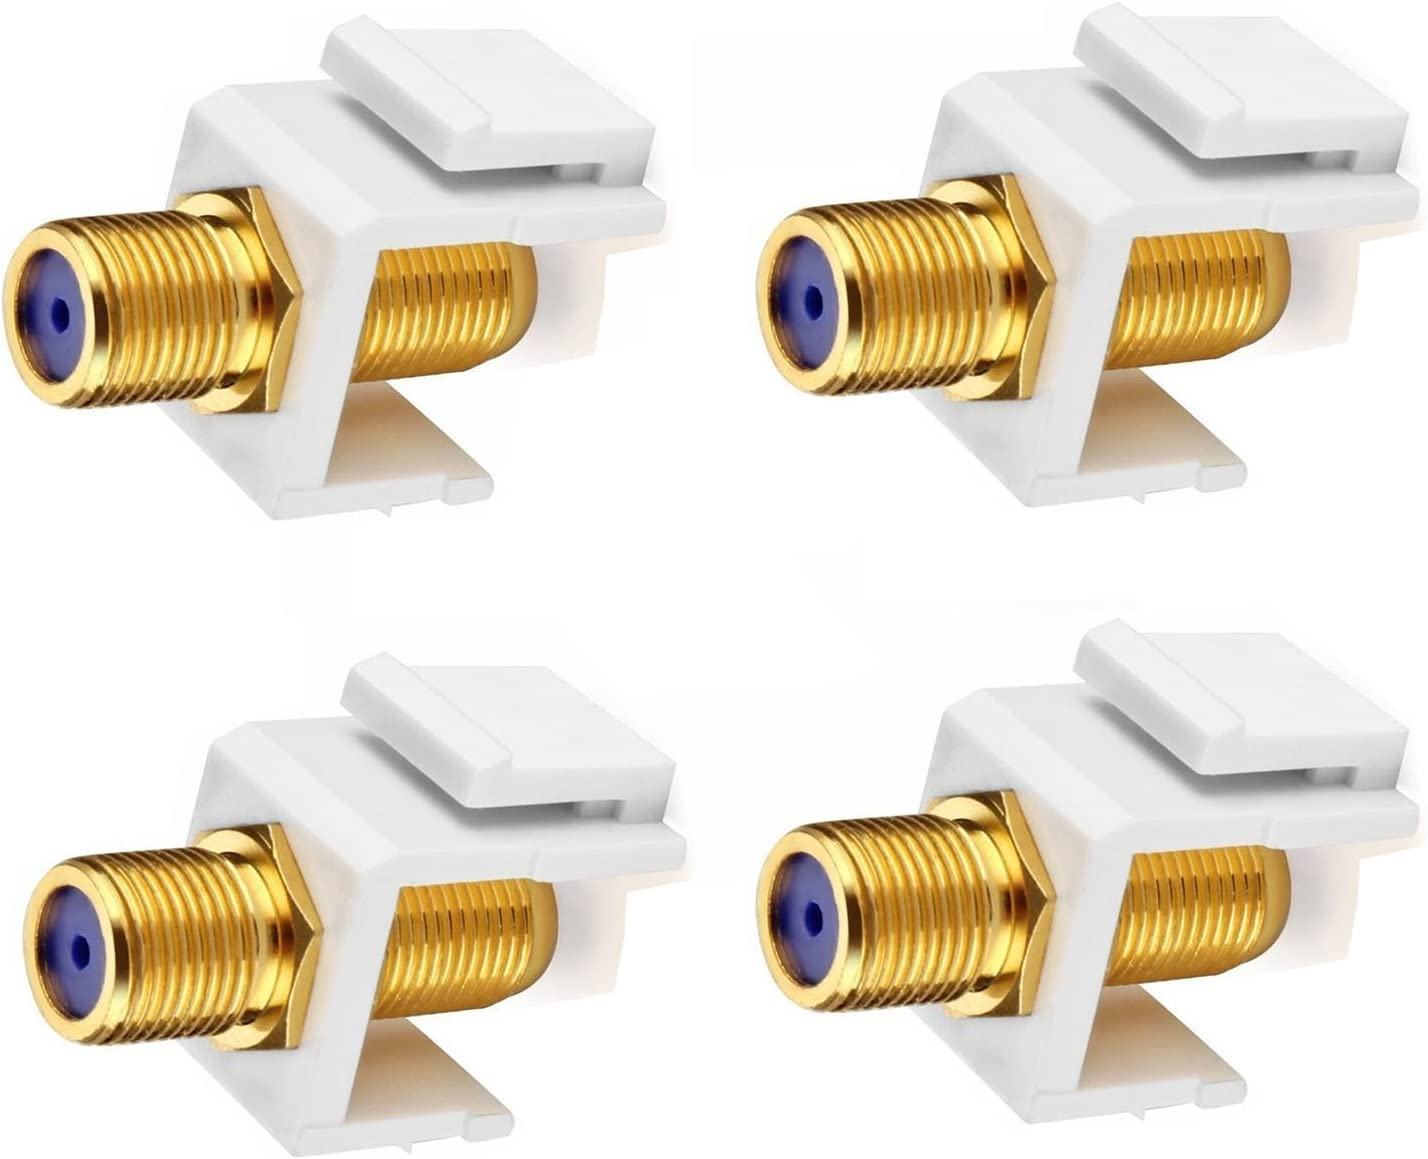 Maxmoral Colorado Springs Mall 4-Pack Gold-Plated RG6 Tucson Mall Keystone Plate Insert Wall Jack